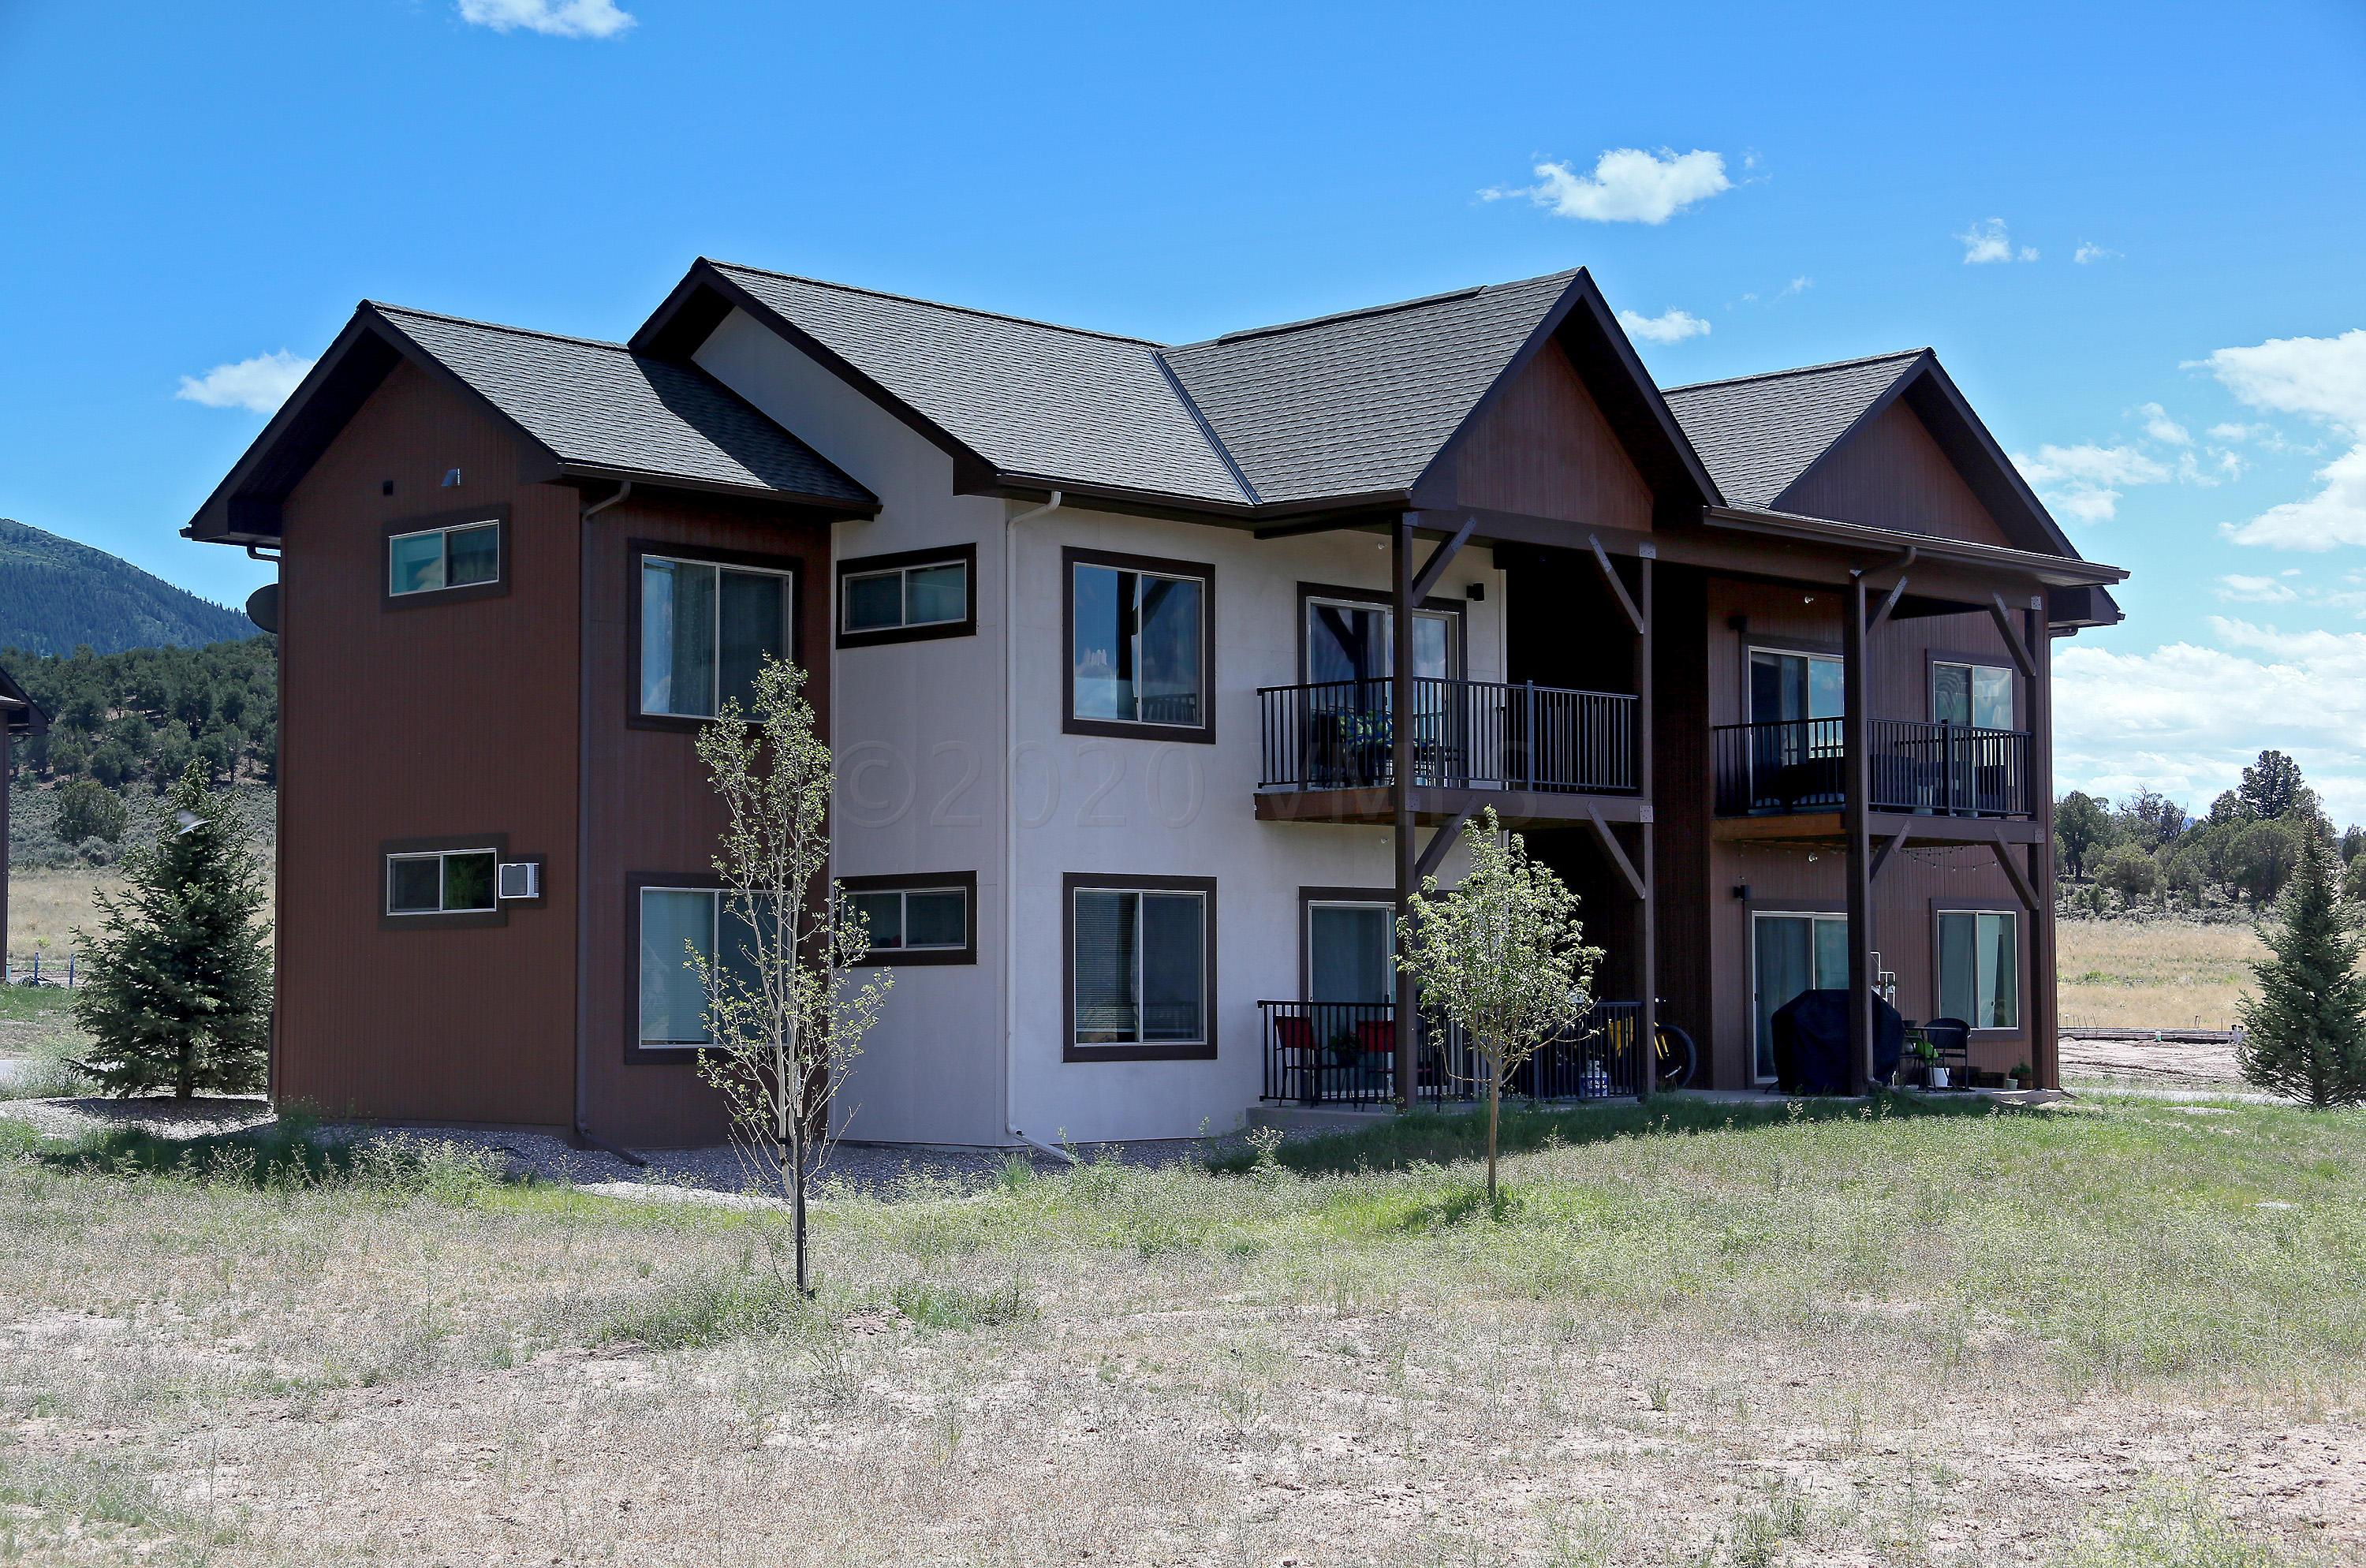 New ground plan with 2-bedrooms/2 bath. Quality-constructed condominium with quartz countertops, tiled showers, stainless-steel appliances and private storage. Ownership also includes 100% access to thousands of acres of open space year-round right out your front door. Photos are of another finished unit (E101). Come discover Upper Buckhorn Valley.